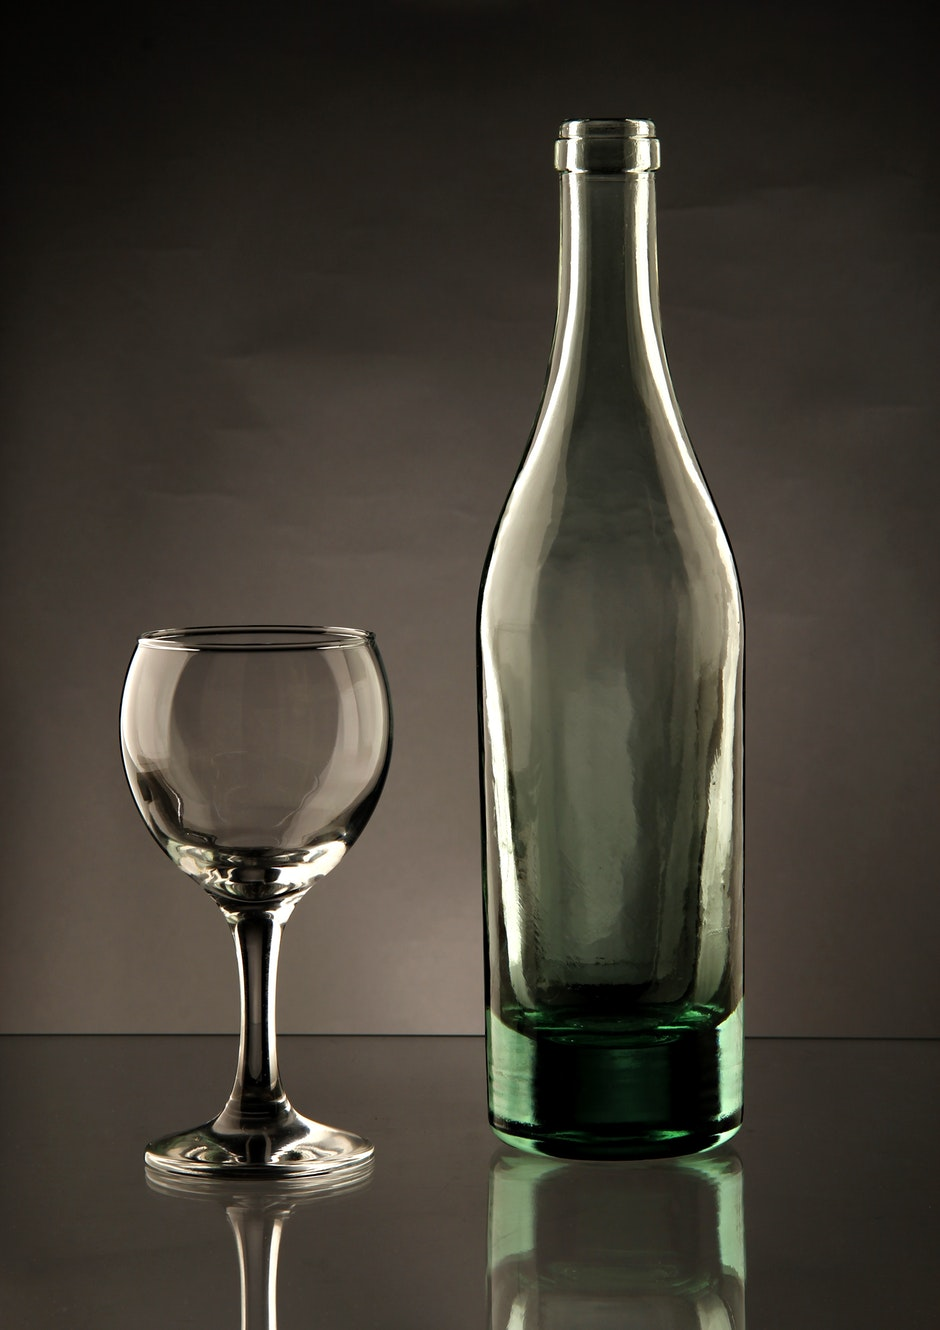 bottle, drinking glass, wine glass